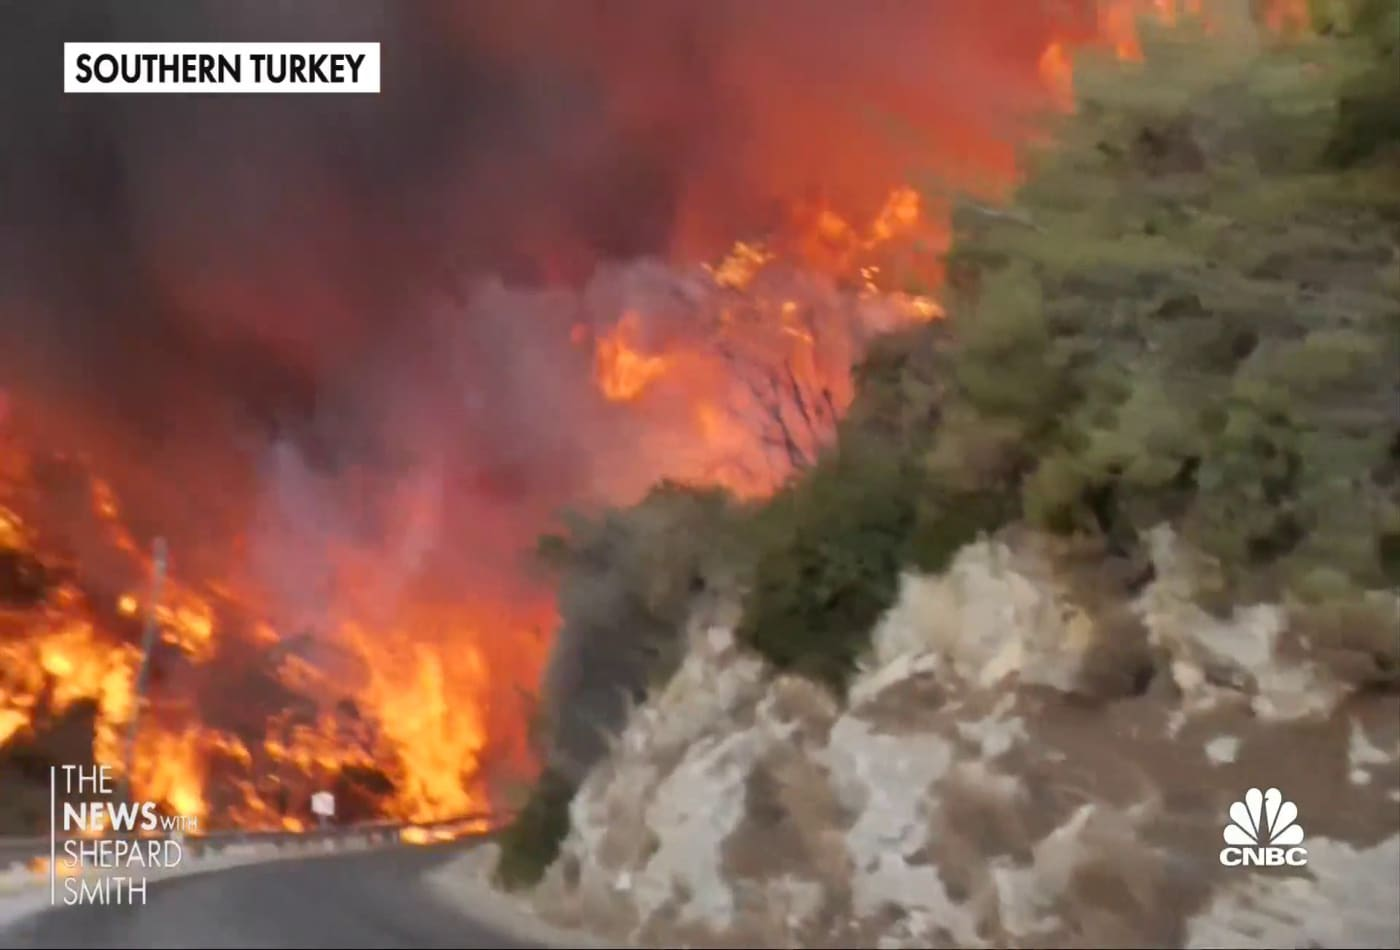 Villagers in Turkey fight wildfires with little government assistance